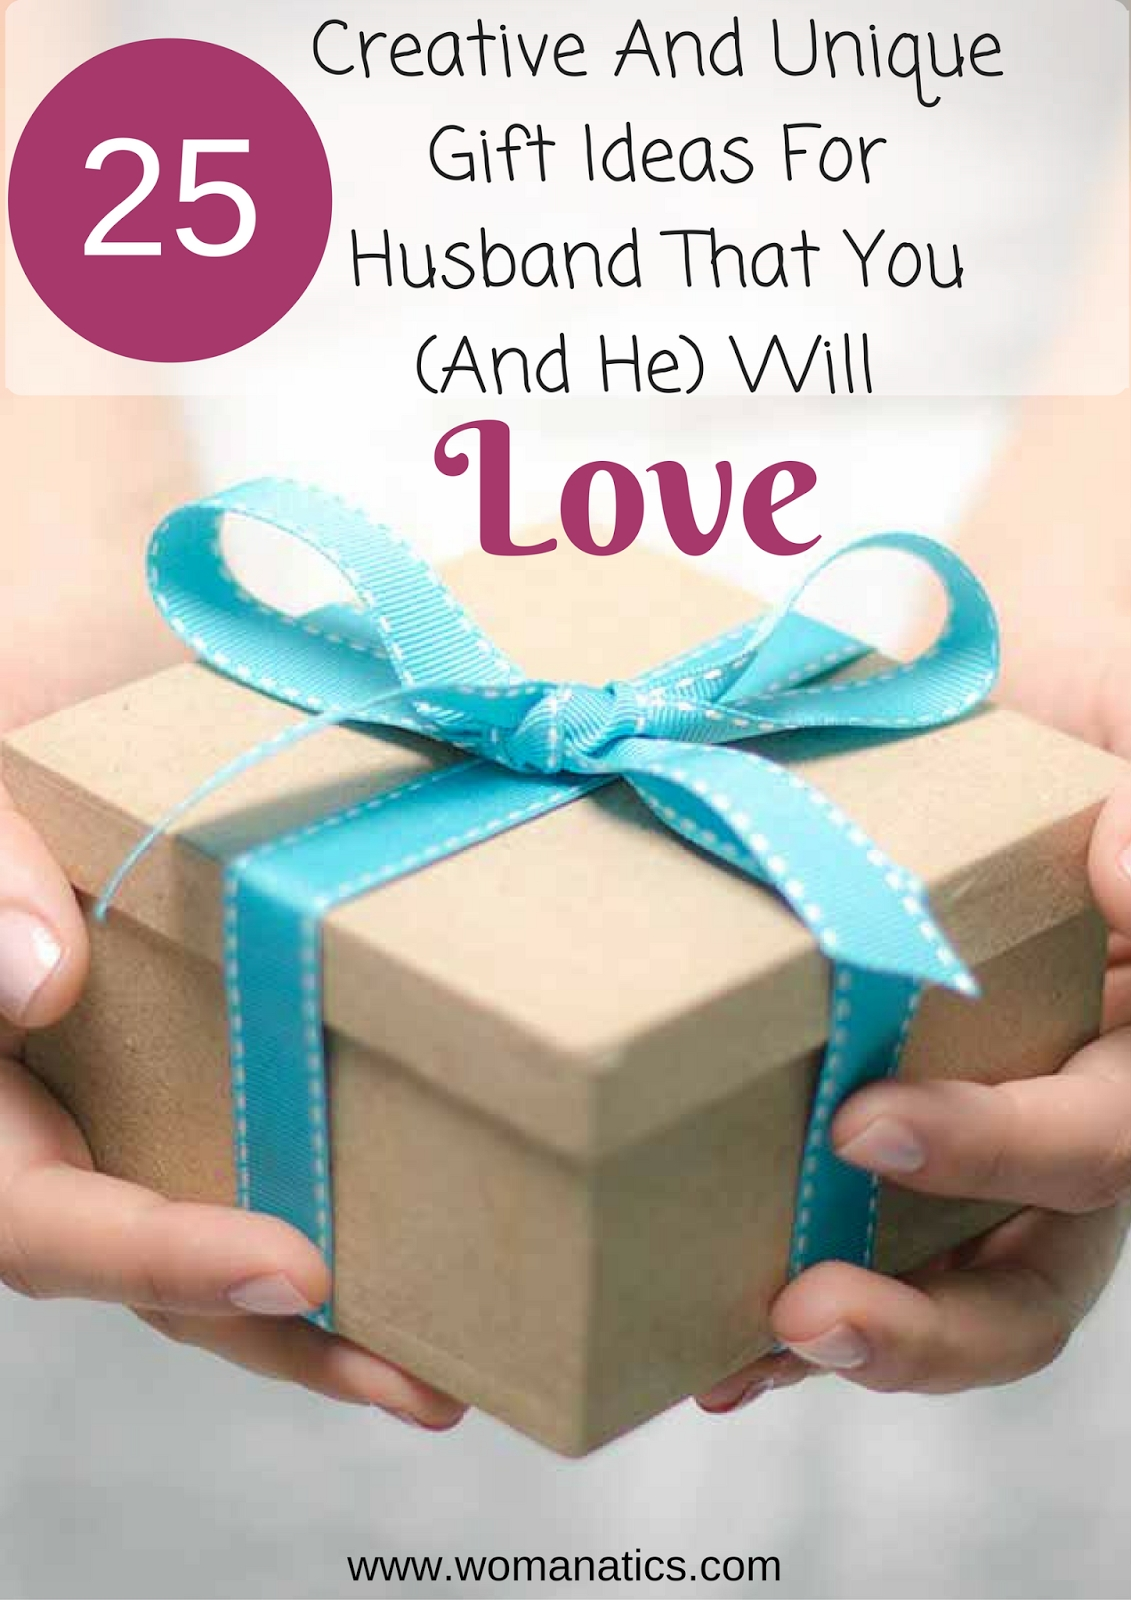 25 creative and unique gift ideas for husband's birthday that you